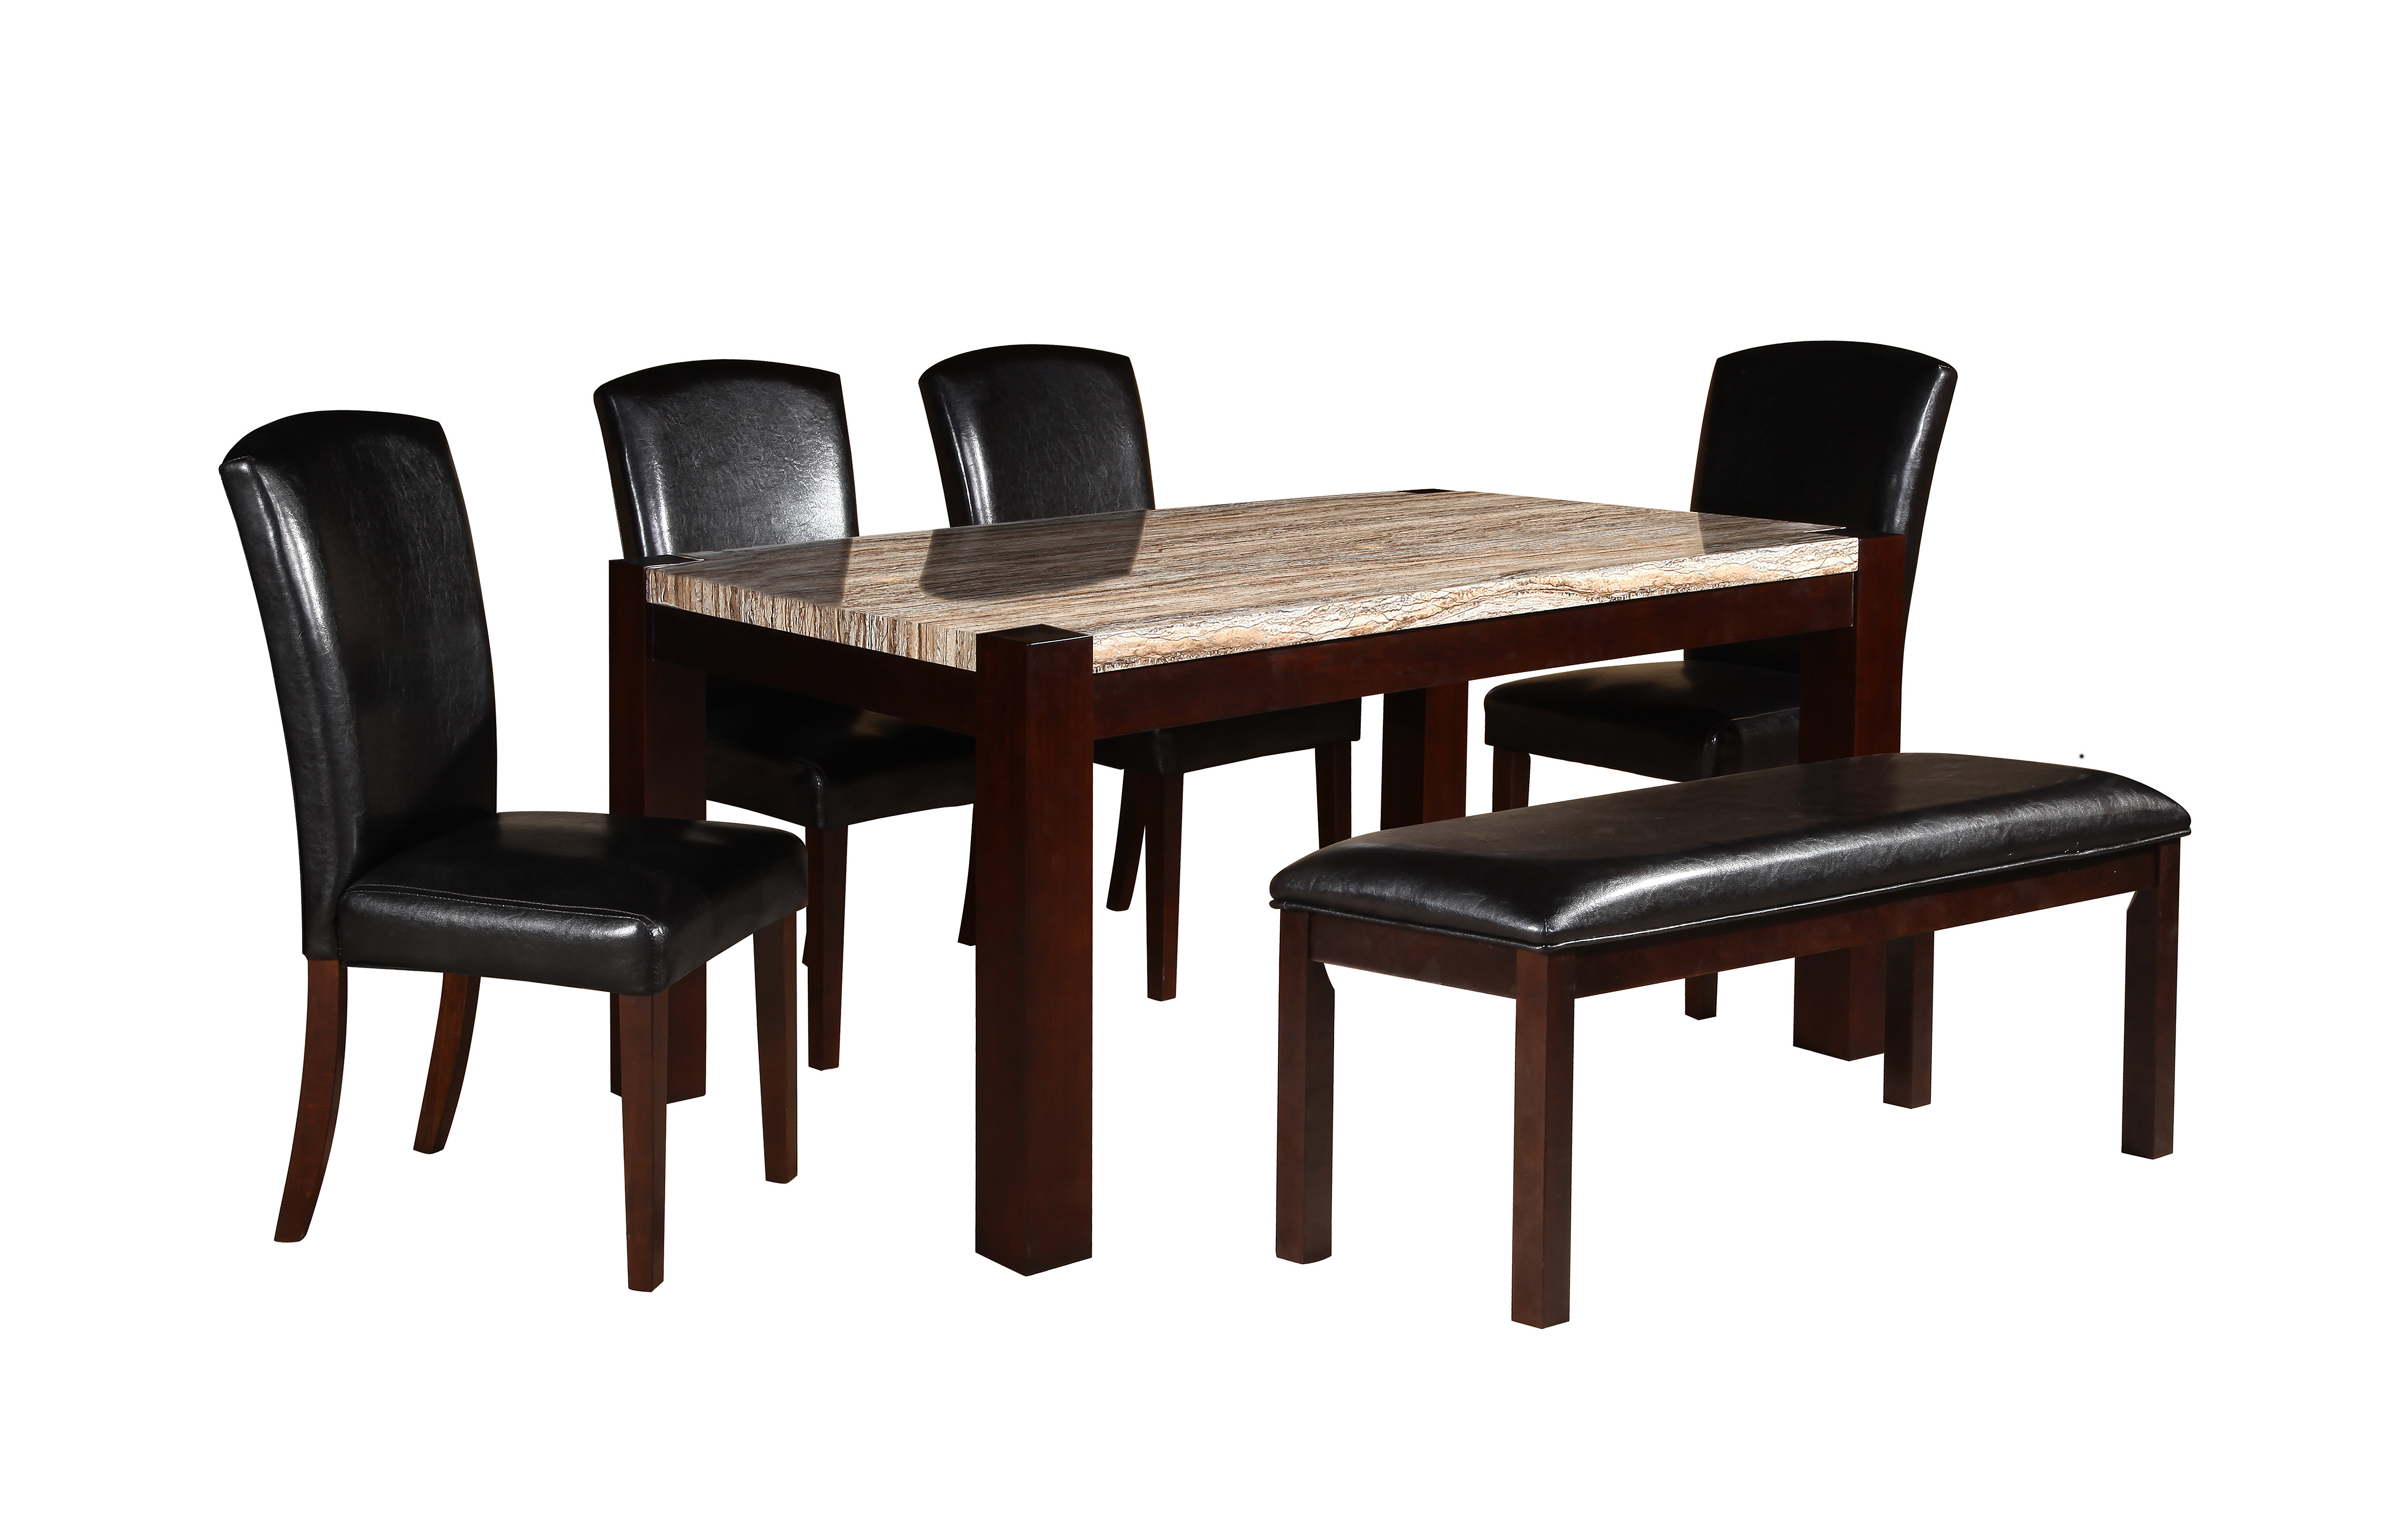 Darby Home Co Dunnstown 5 Piece Dining Set (View 12 of 25)